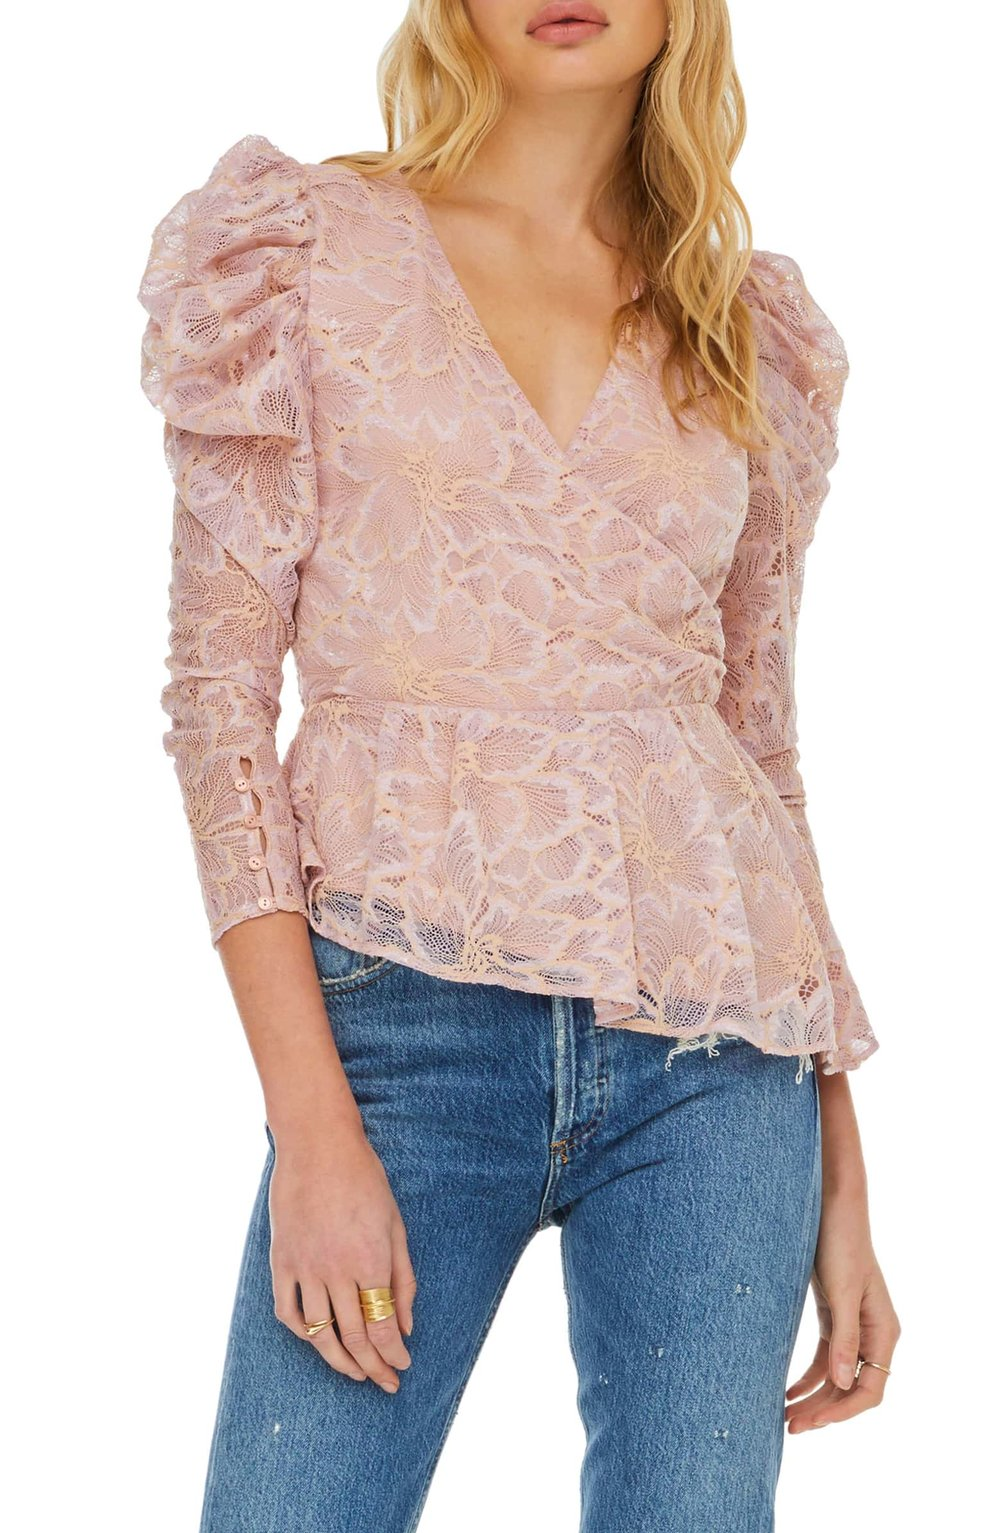 icon lace top.jpg